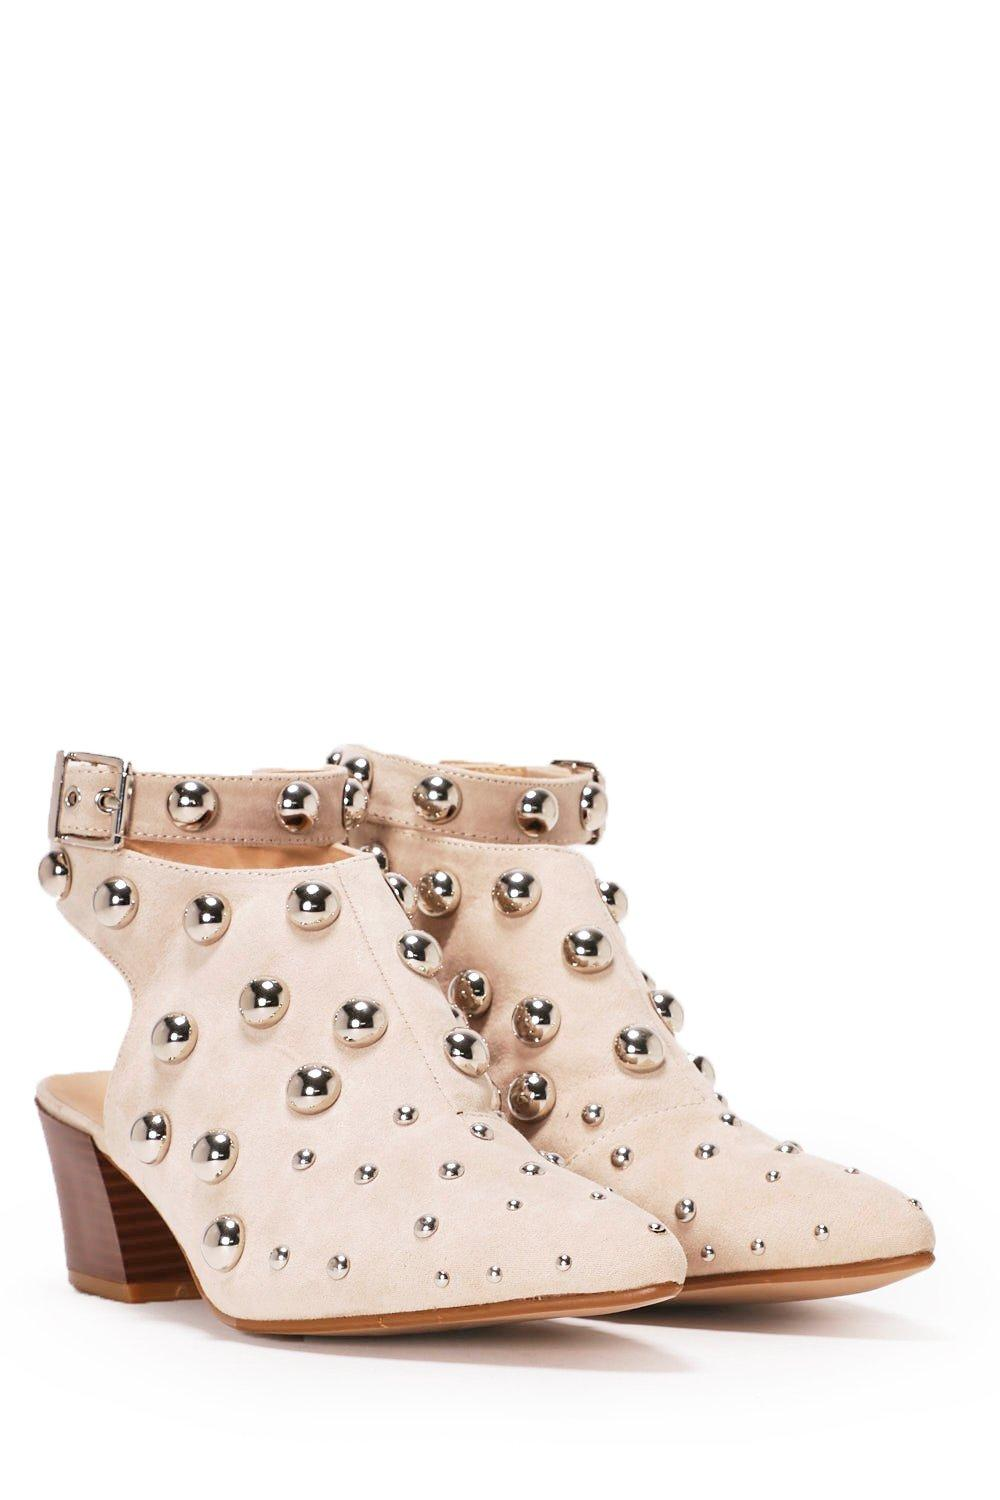 2bfc3613804 Balls to the Wall Studded Ankle Boot